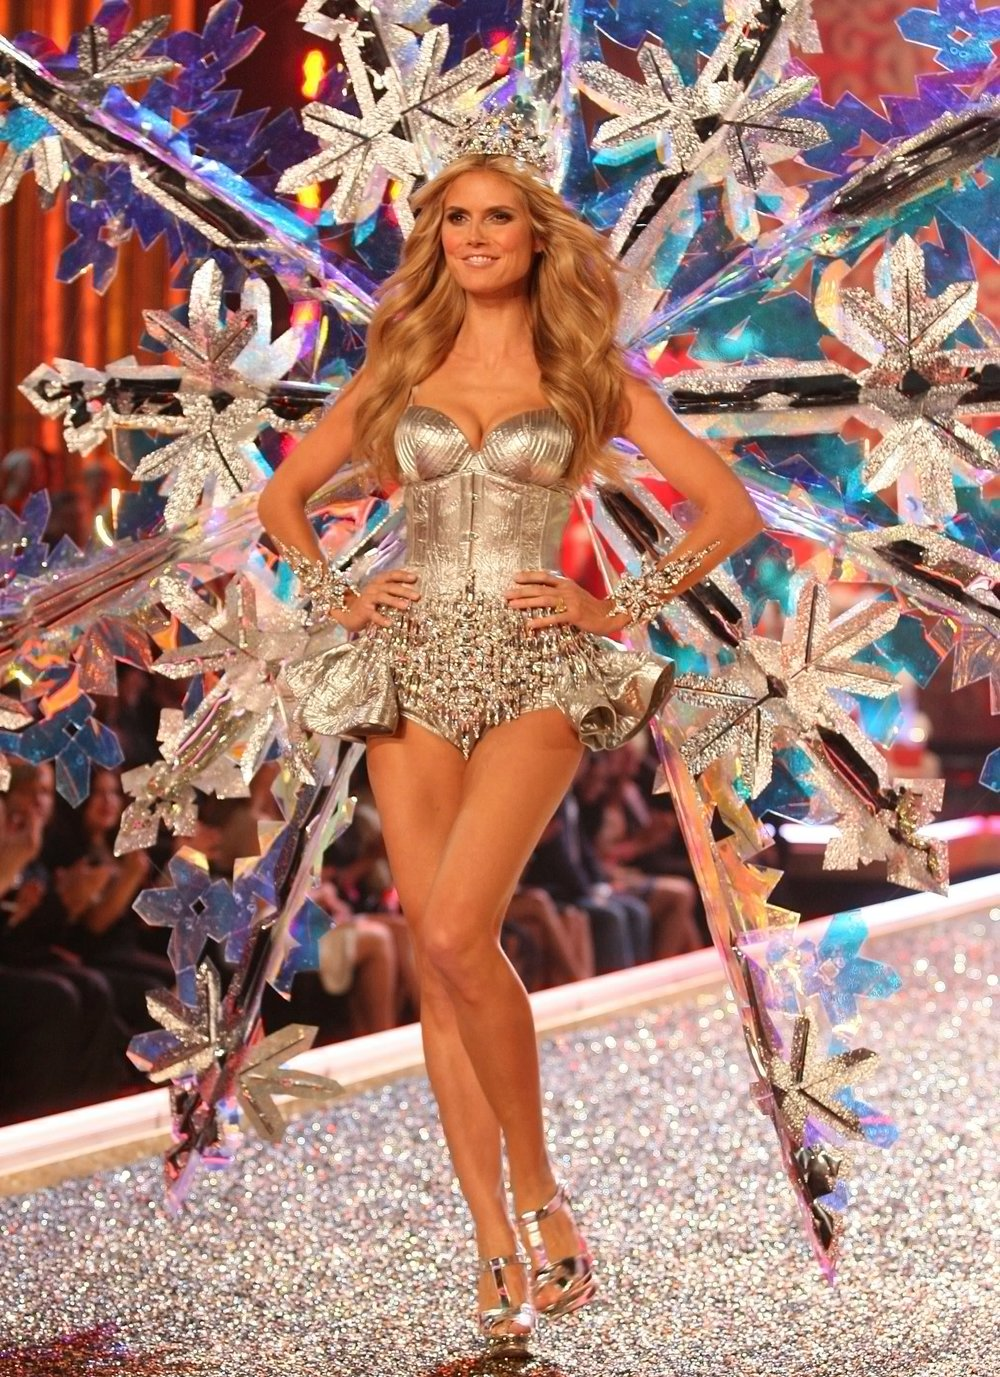 gallery-pictures-from-Victoria-Secret-Heidi-Klum-Quits-Modelling-Lingerie-Chain.jpg